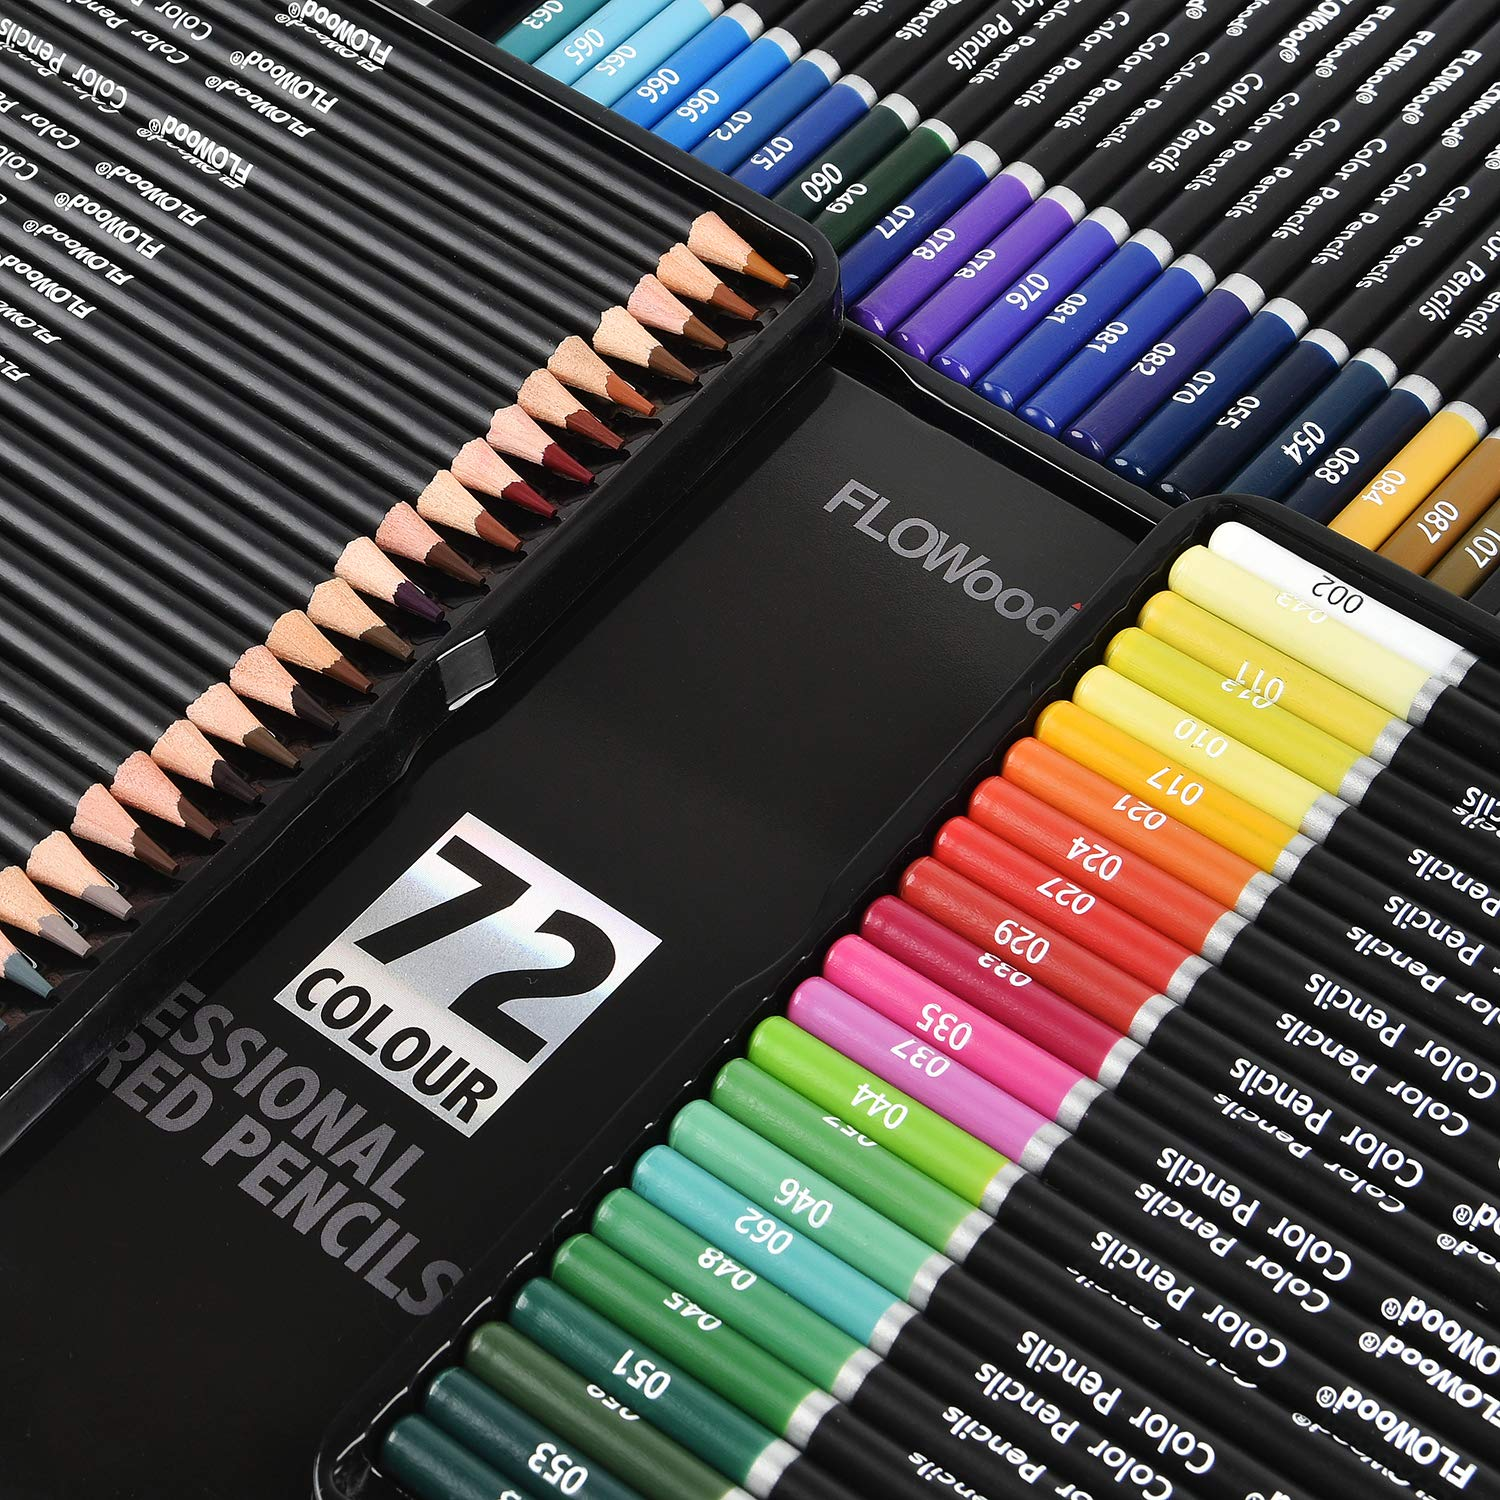 Flowood 48 Colored Pencils Professional Soft Core Art Drawing Pencils Set,Art Supply for Sketch Coloring Books